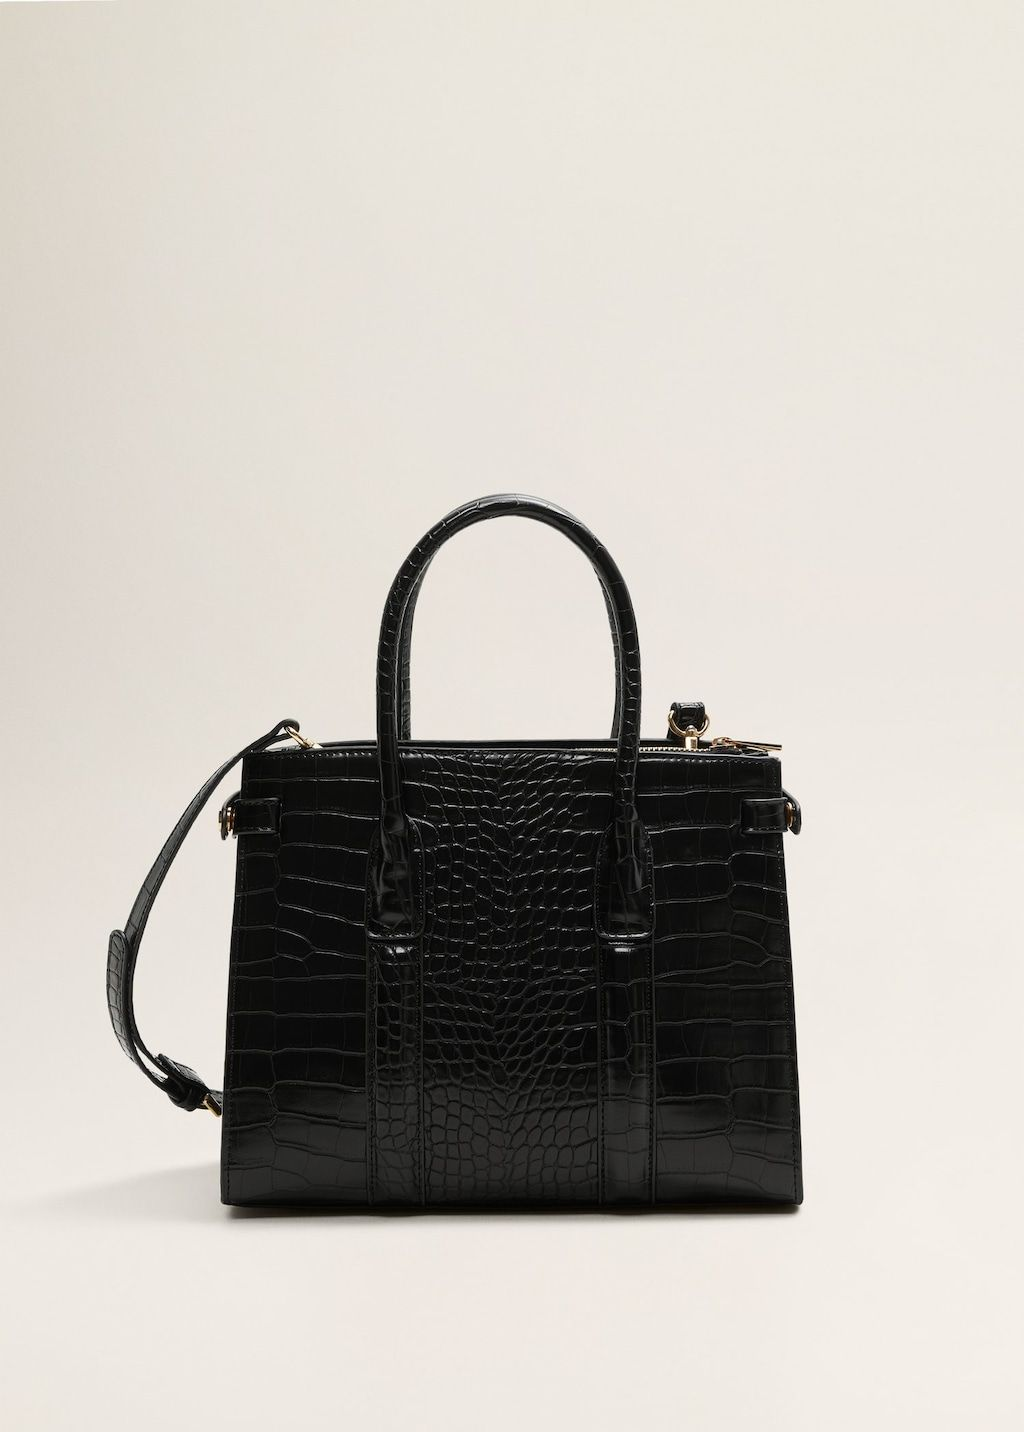 469d620578 Croc-effect tote bag - Women in 2019 | FW18/19 | Bags, Tote bag, Crocs